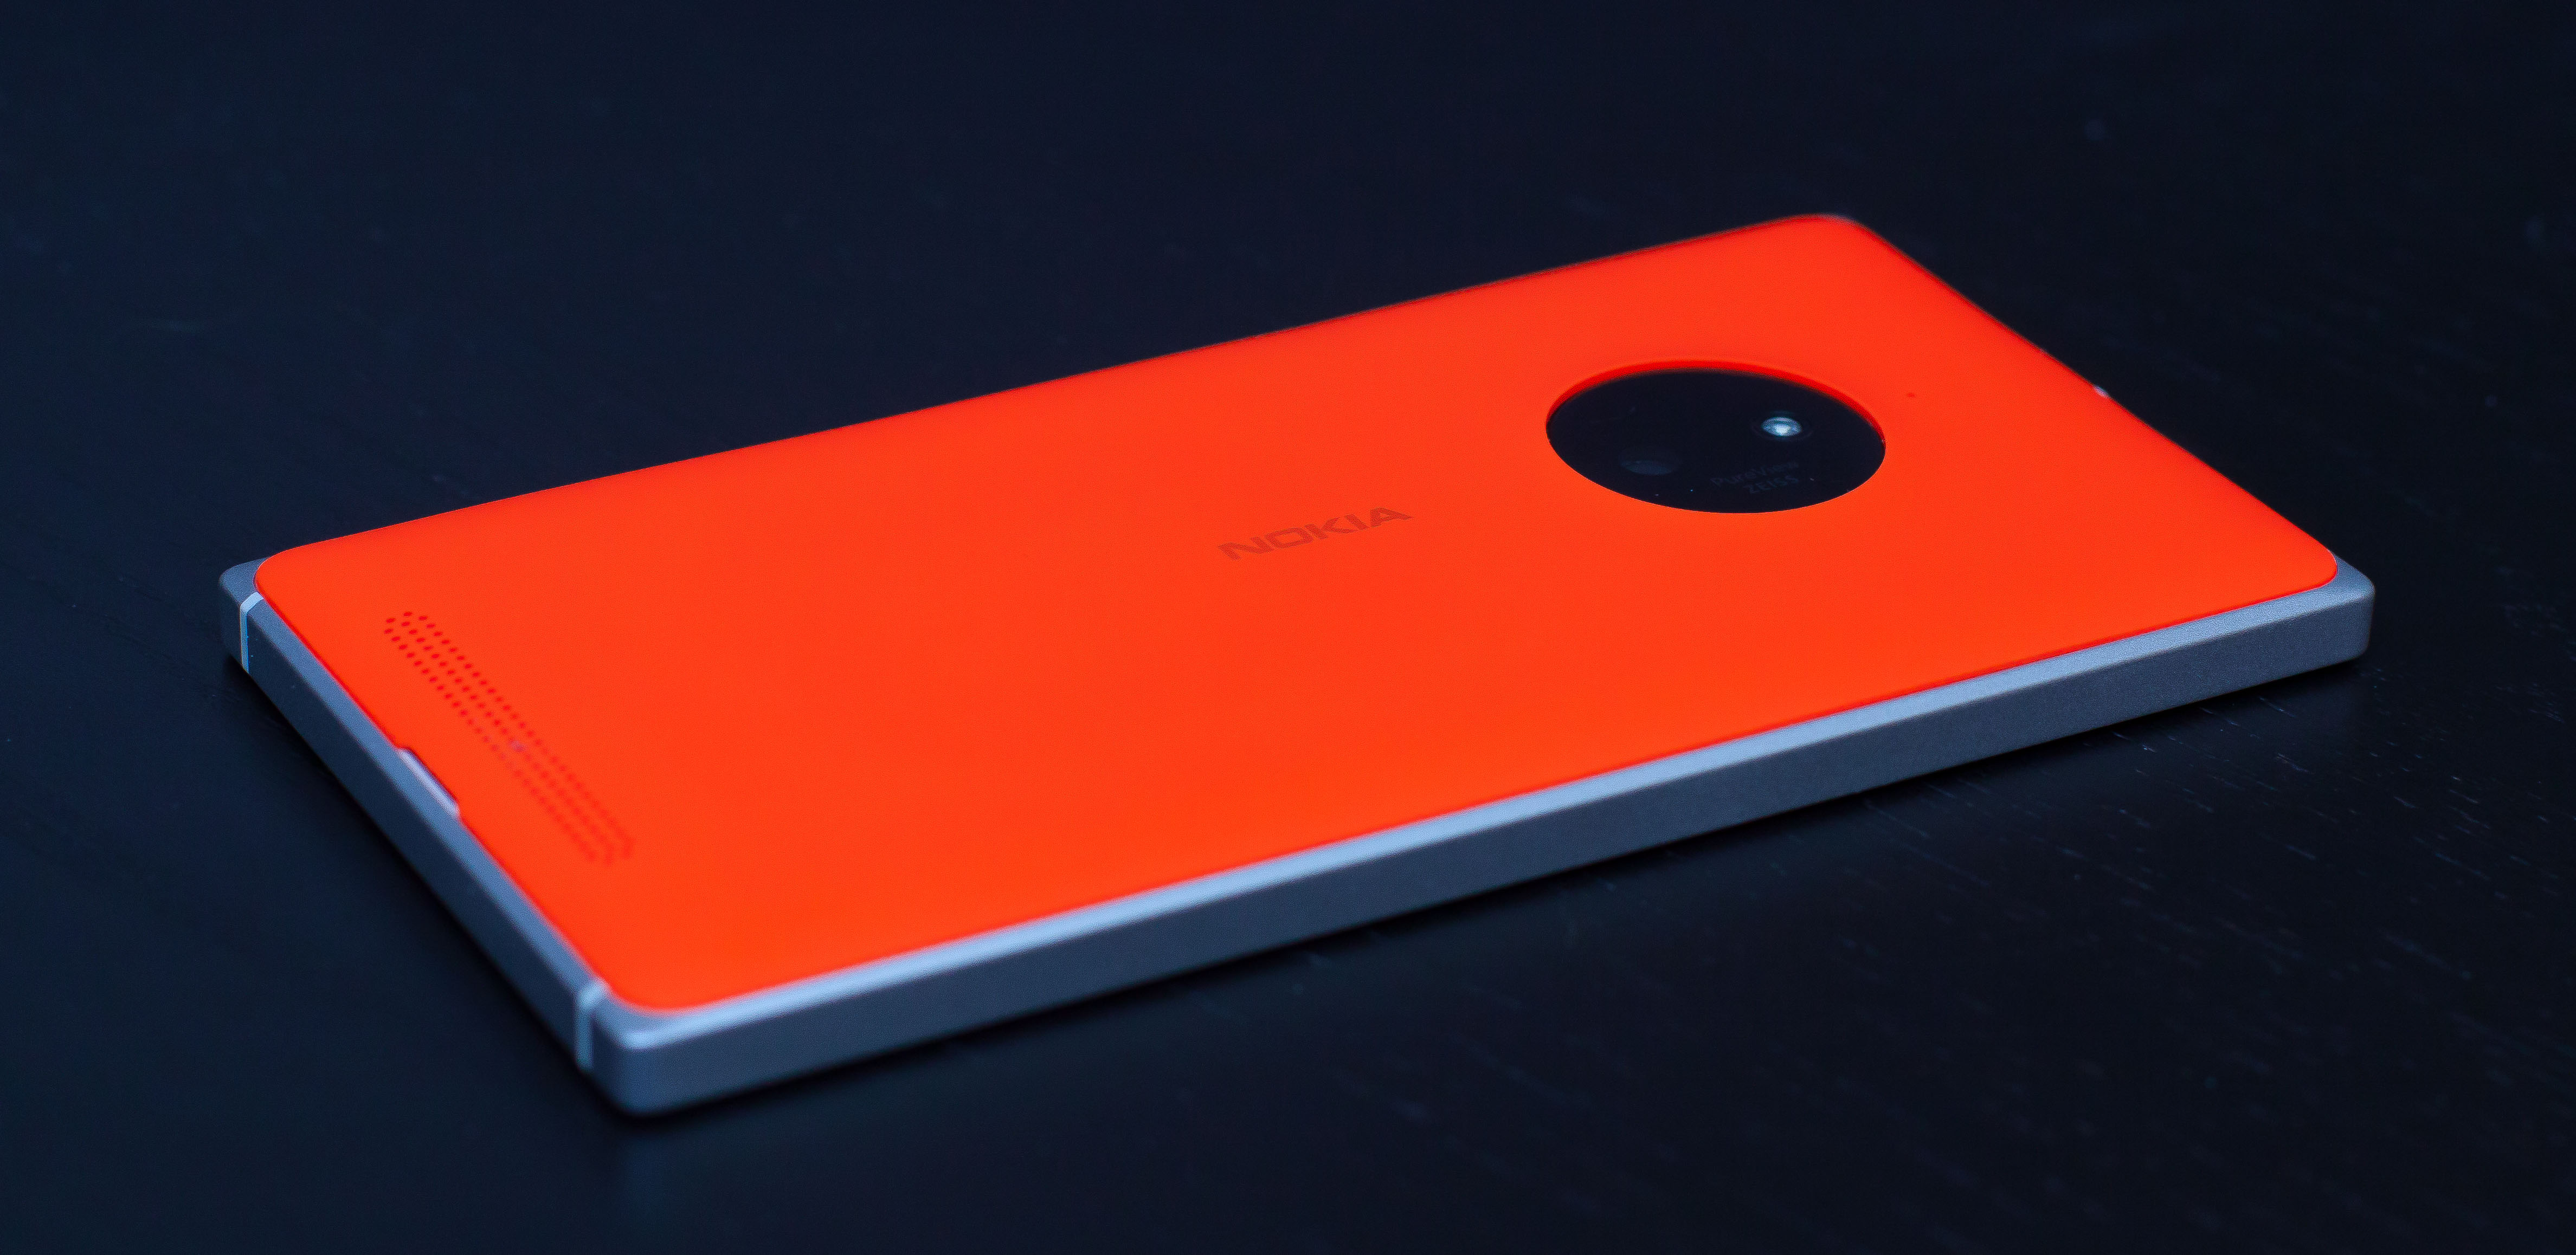 The Lumia 830. The orange part pops off, exposing the battery, SIM, and microSD slot, and it can be replaced if you want something a little less orange. Not that you would.